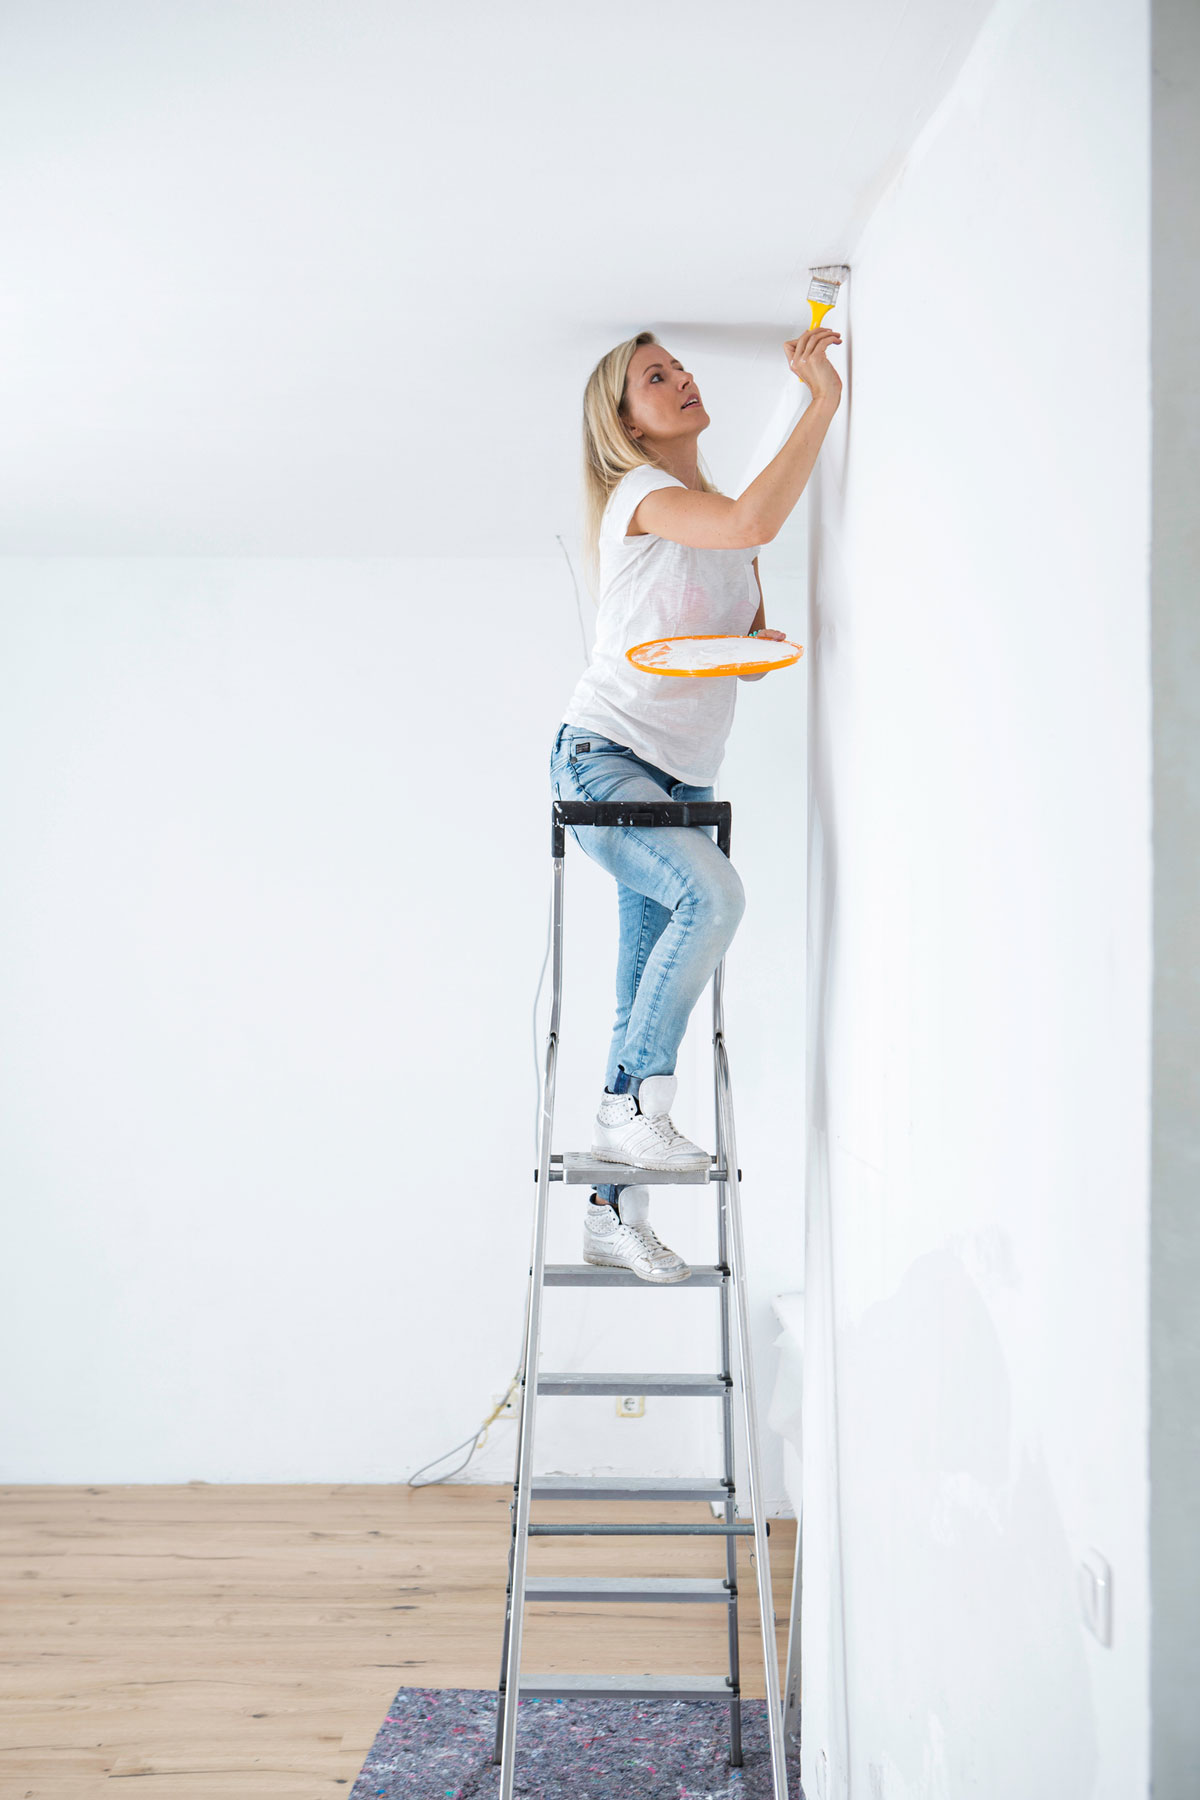 Ceiling paint color - woman painting ceiling